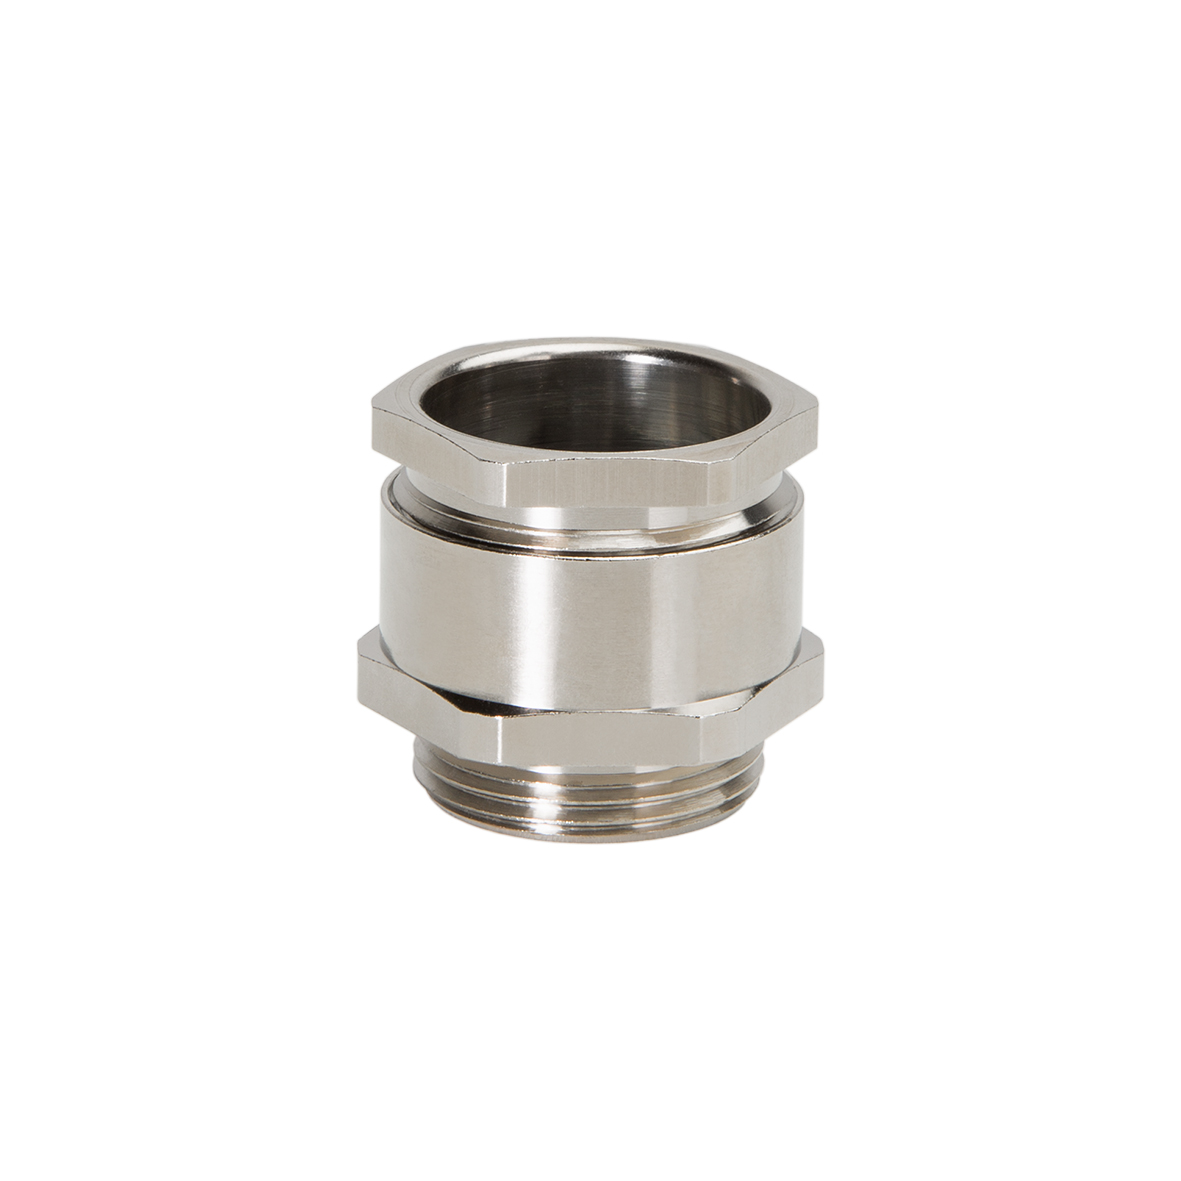 "HEXAGONAL CABLE GLANDS"" METRIC"" FLAT CABLE BRASS NICKEL"